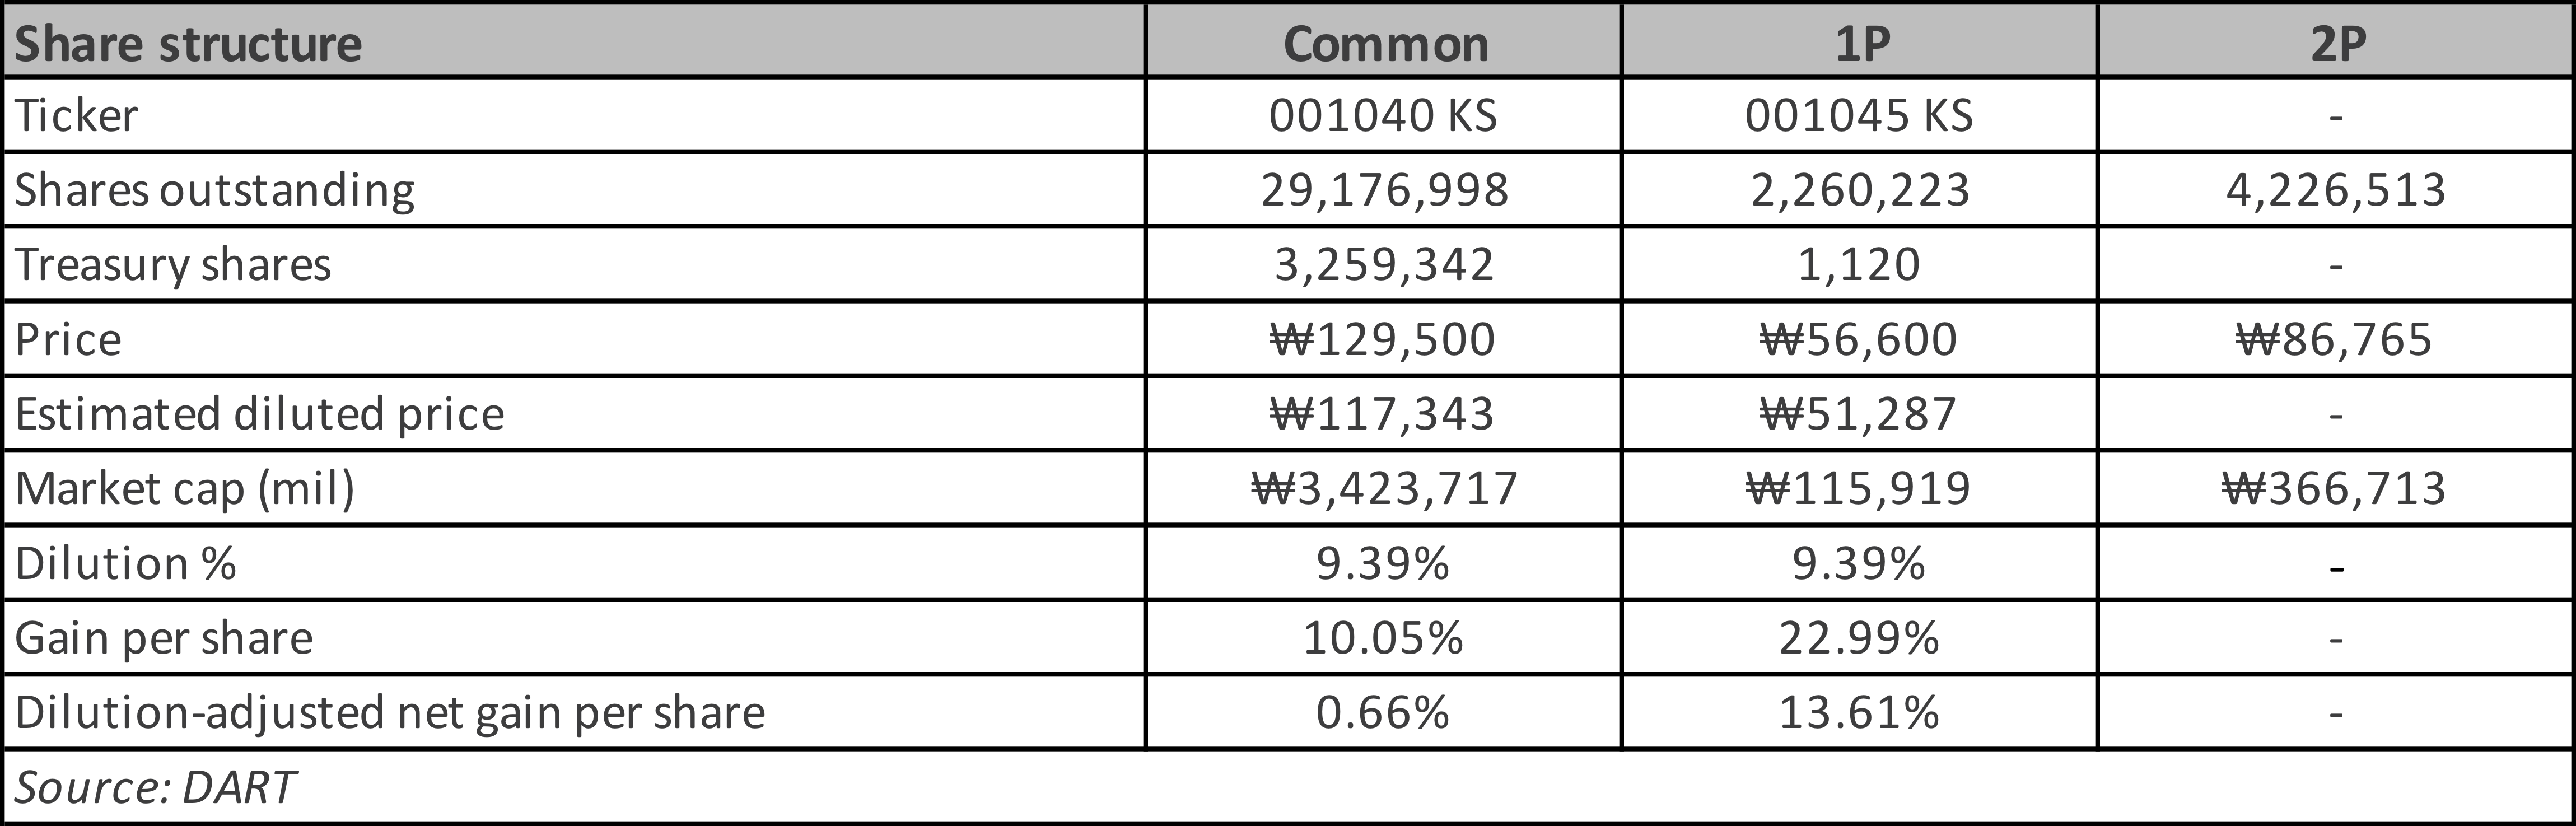 CJ Corp Share Class: Huge Net Gain Difference Between Common